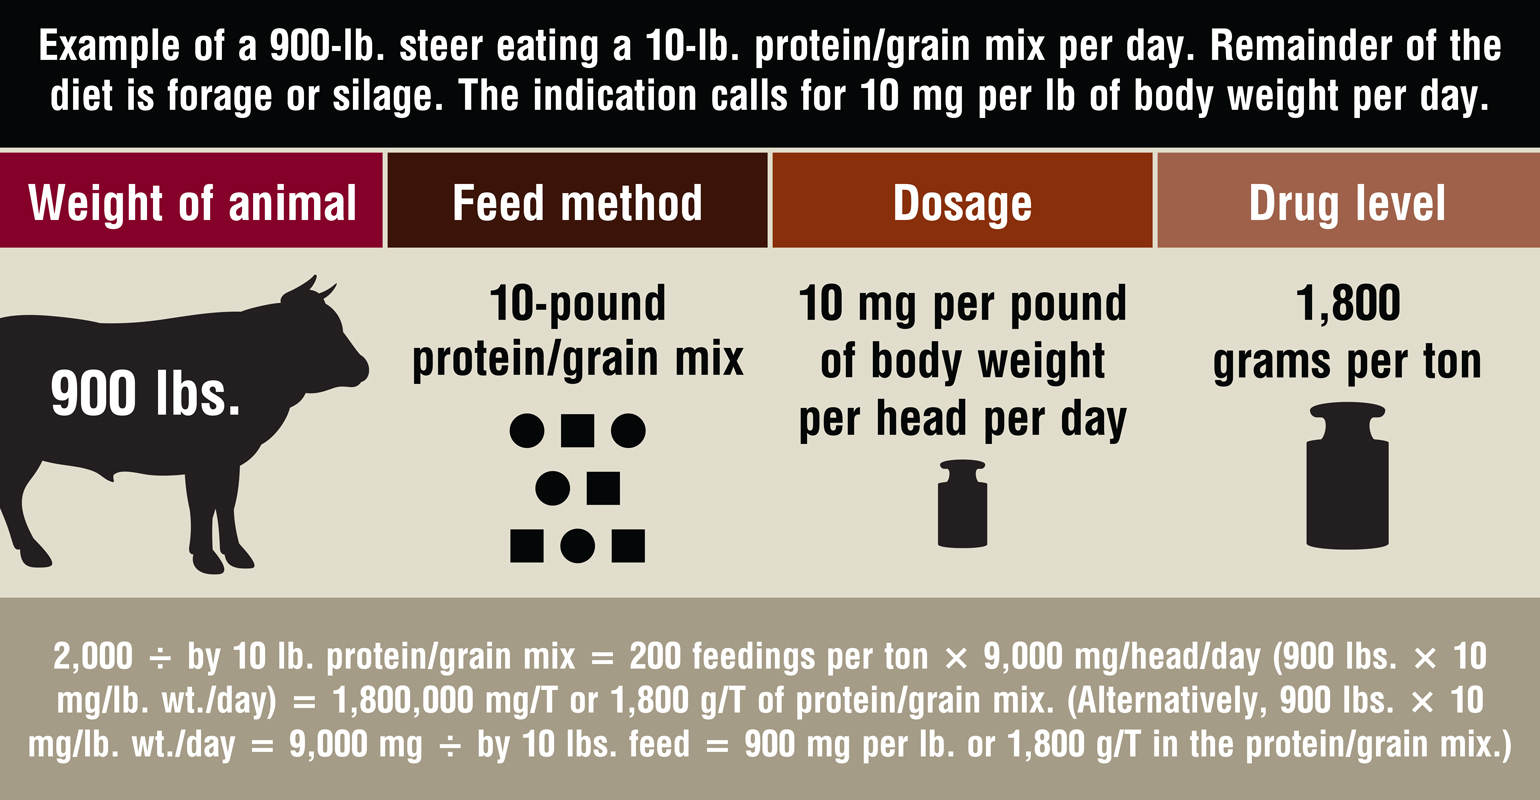 Read 20 000 G Ton And The Feeding Directions Would Feed 0 5 Pound Per Head Day To Achieve 000mg Or Grams